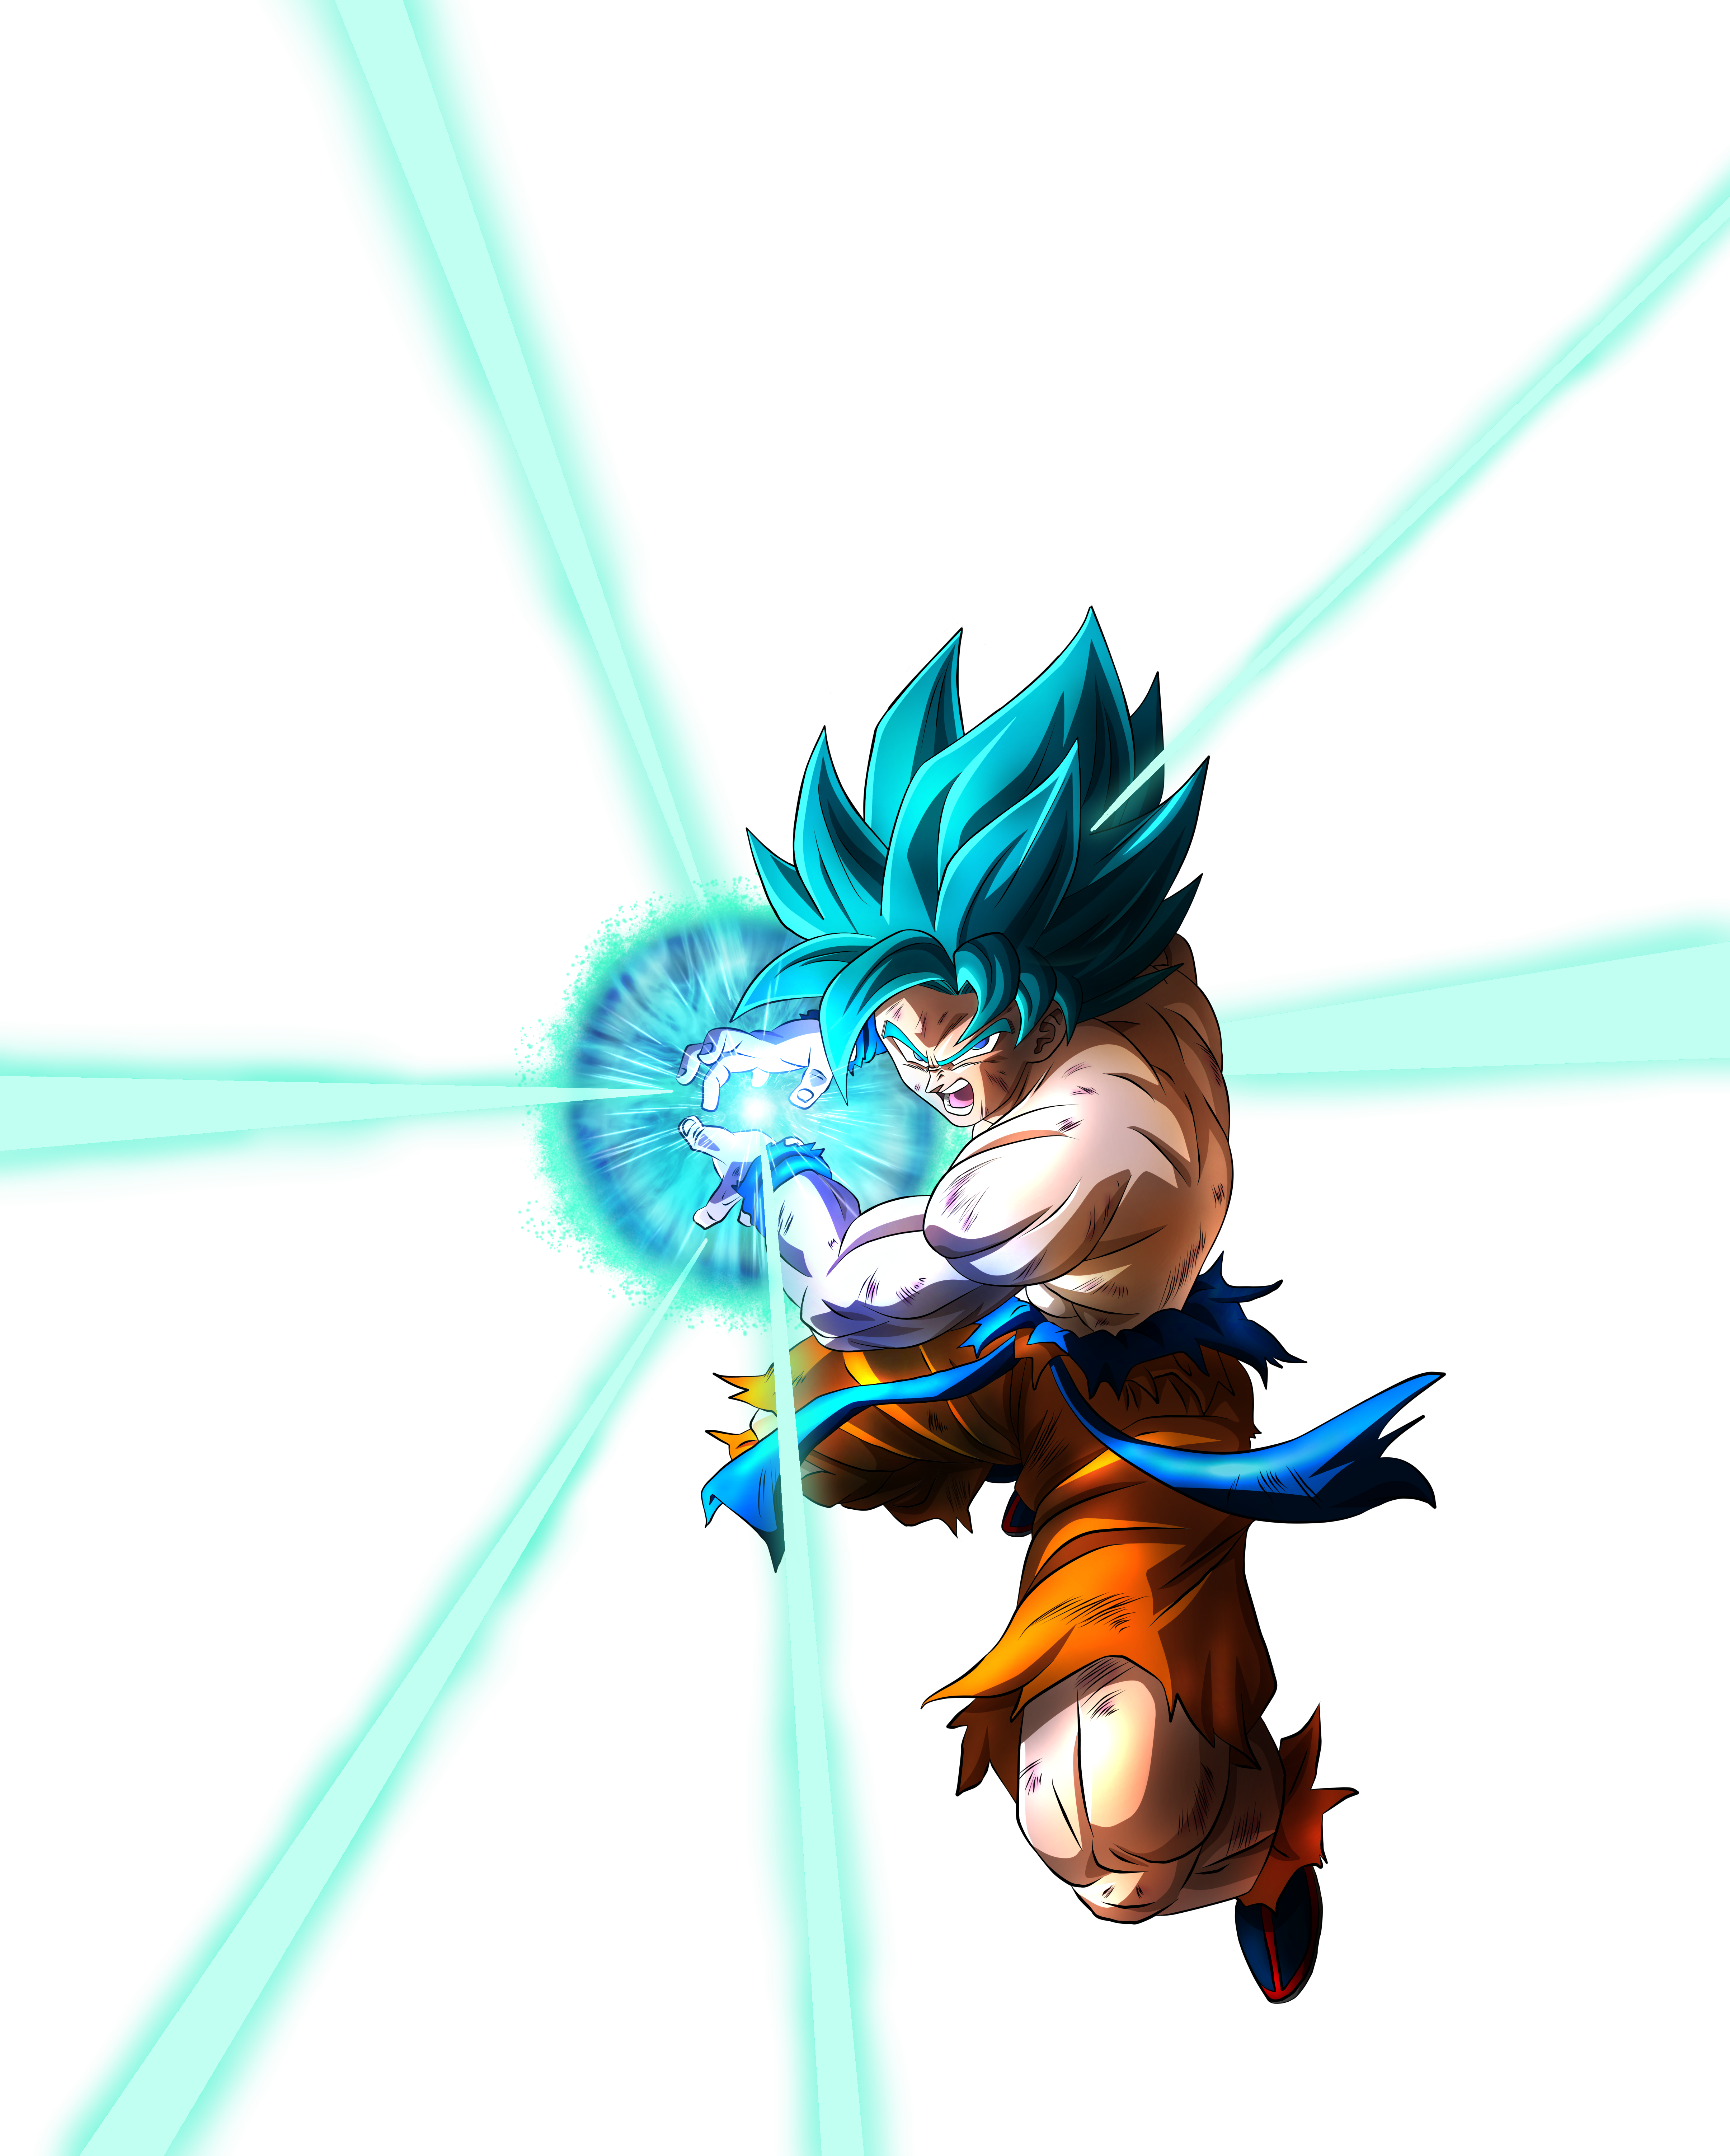 Dragon Ball Super By Dt501061 On Deviantart Anime Dragon Ball Super Dragon Ball Art Dragon Ball Wallpaper Iphone